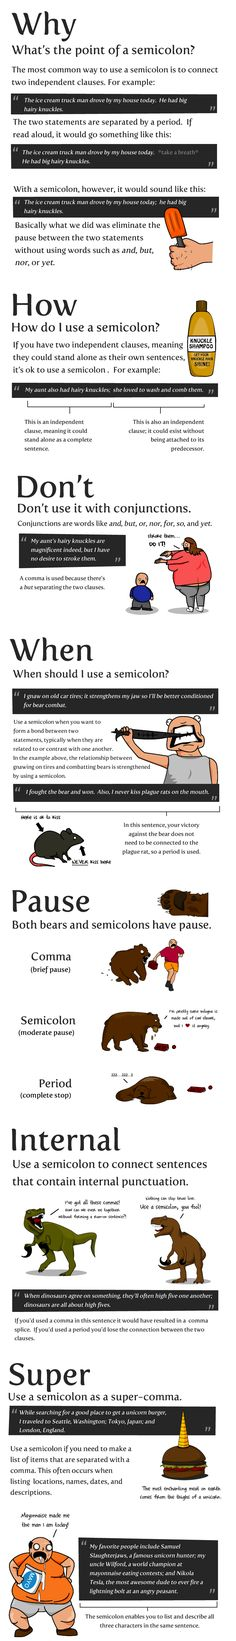 How to Use a Semicolon I thought infographics were supposed to make things easier to understand. This one just proved to me that we should eliminate semicolons all together. Death to the semicolon!<< But it is easy to understand. Writing Advice, Writing Resources, Writing Help, Writing Skills, Writing A Book, Writing Prompts, Essay Writing, Writing Courses, Writing Services